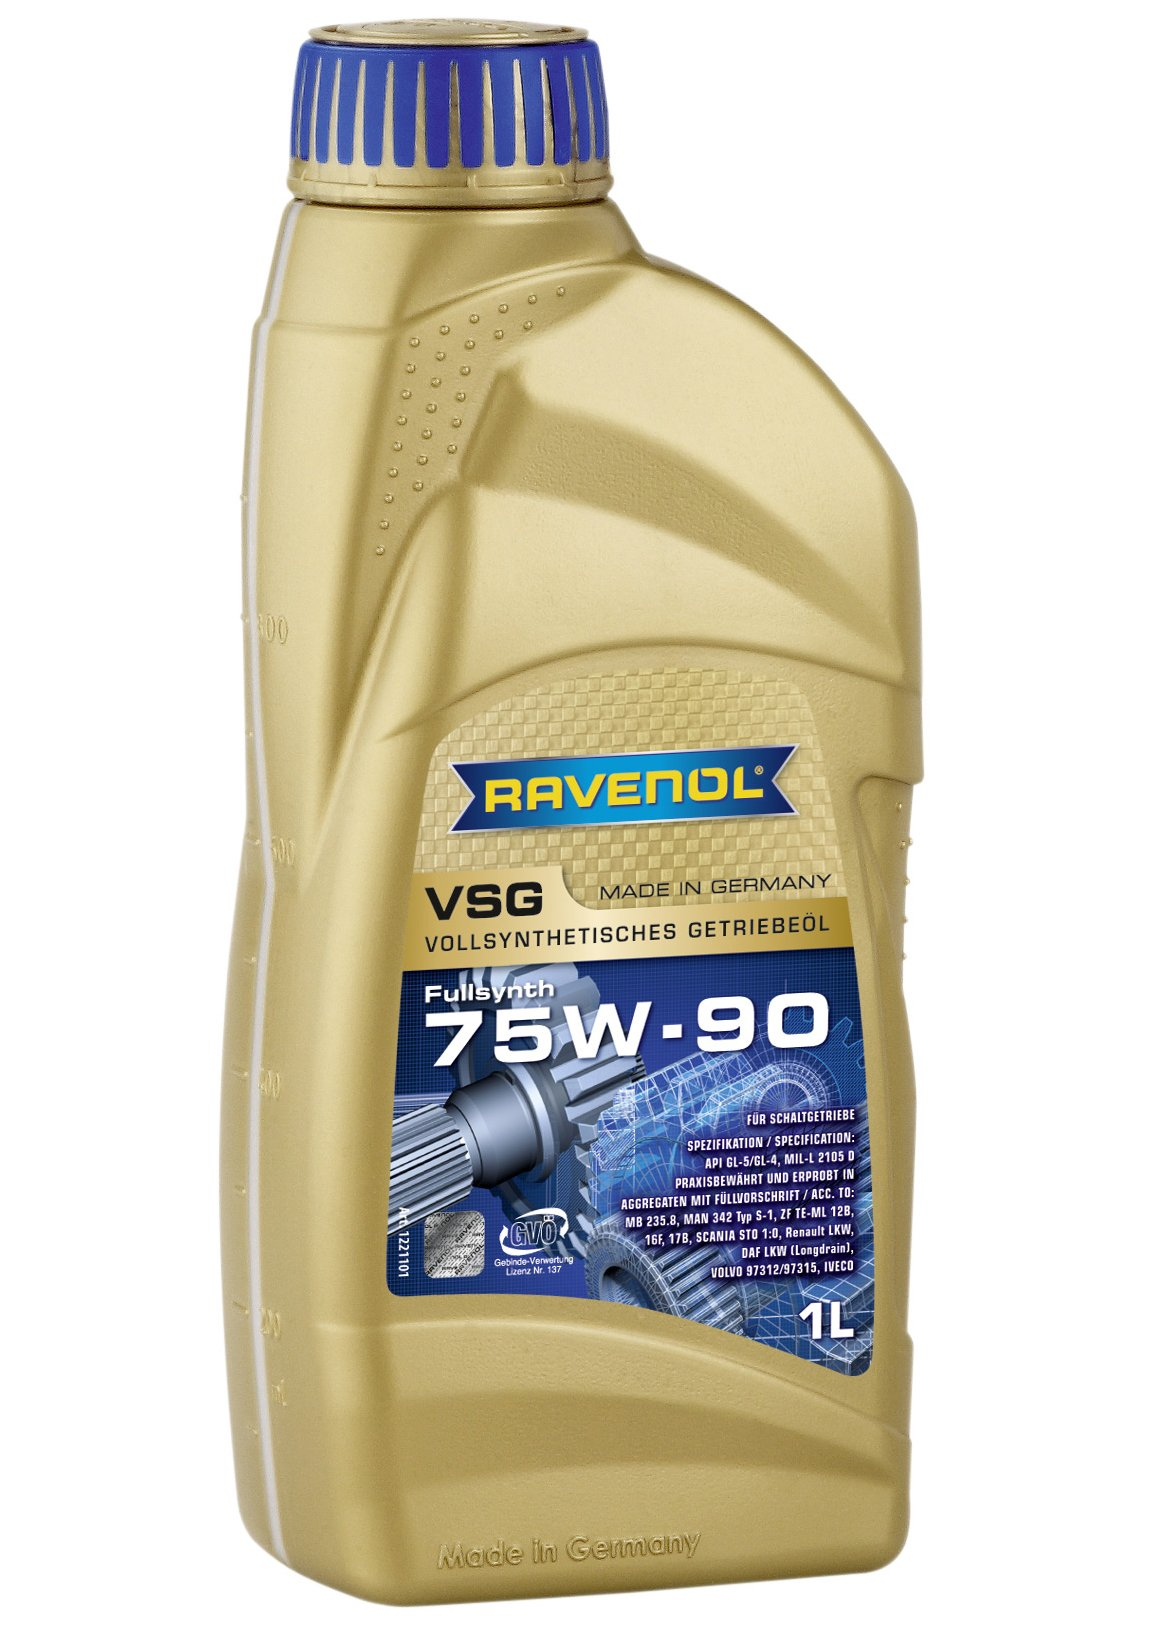 Ravenol J1C1109 SAE 75W-90 Gear Oil - VSG Full Synthetic API GL-4 / GL-5 Spec (1 Liter)